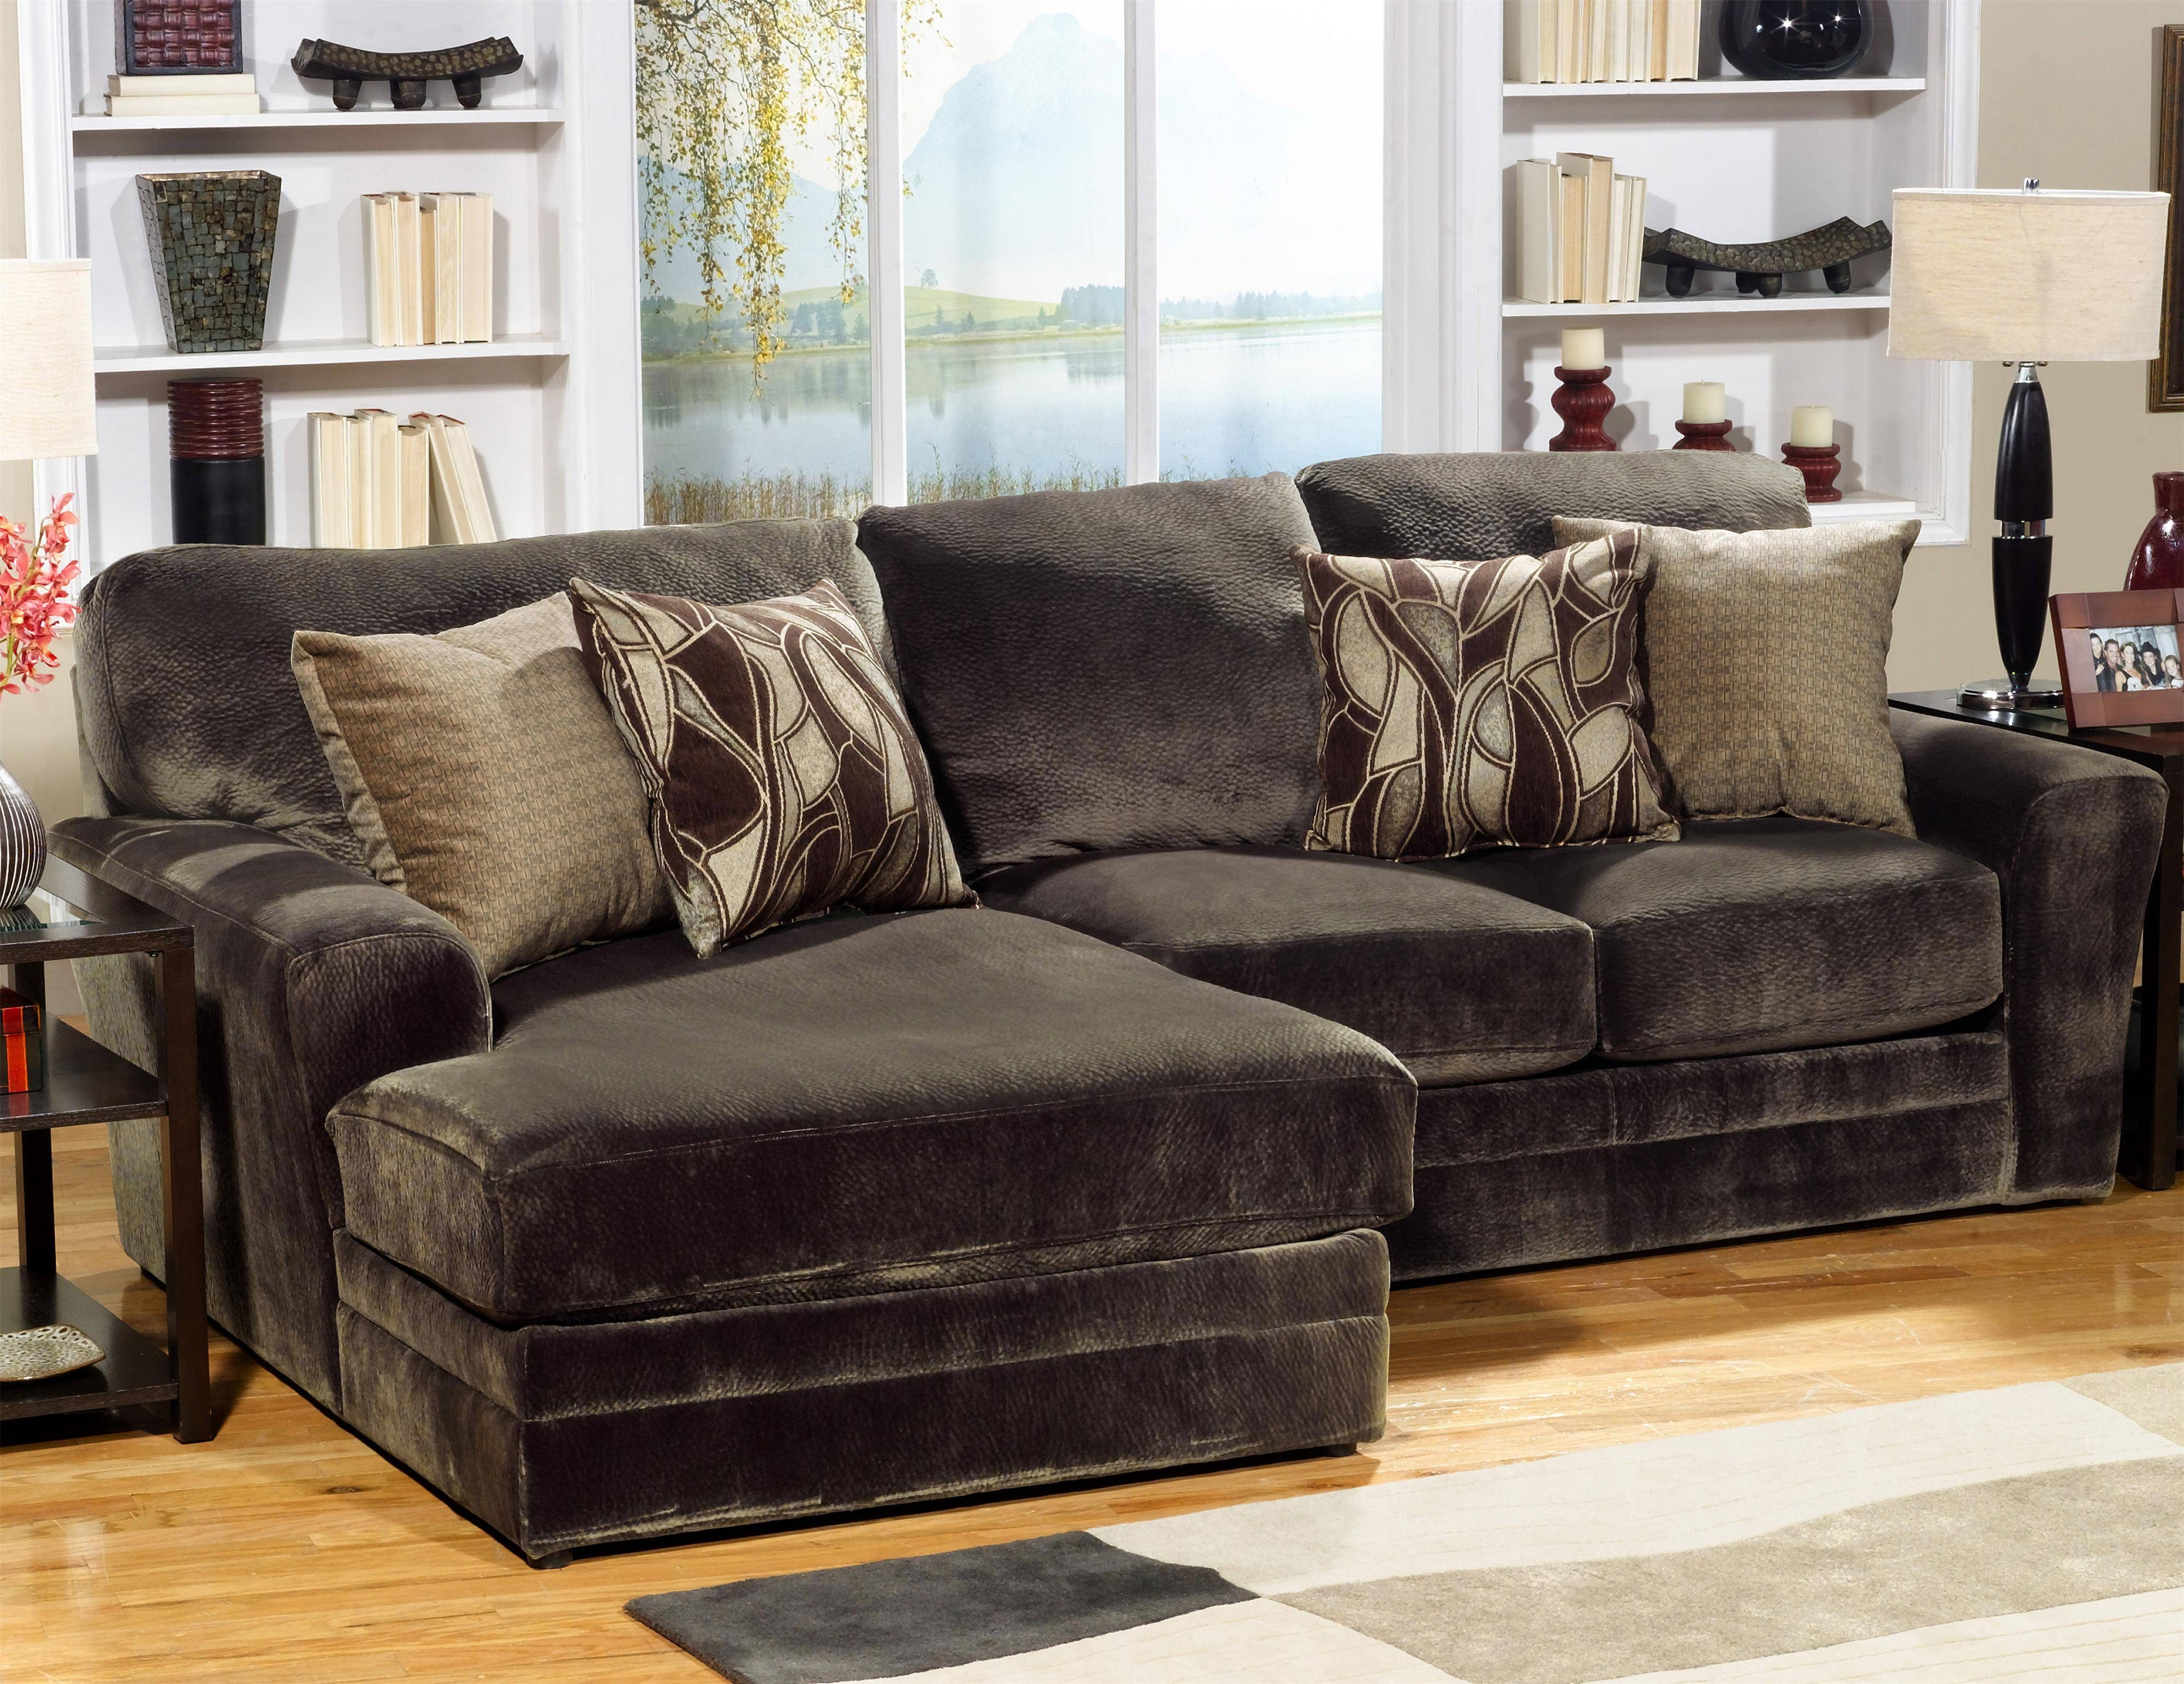 2 Piece Sectional Sofa With Lsf Chaisejackson Furniture | Wolf with Small 2 Piece Sectional Sofas (Image 5 of 30)